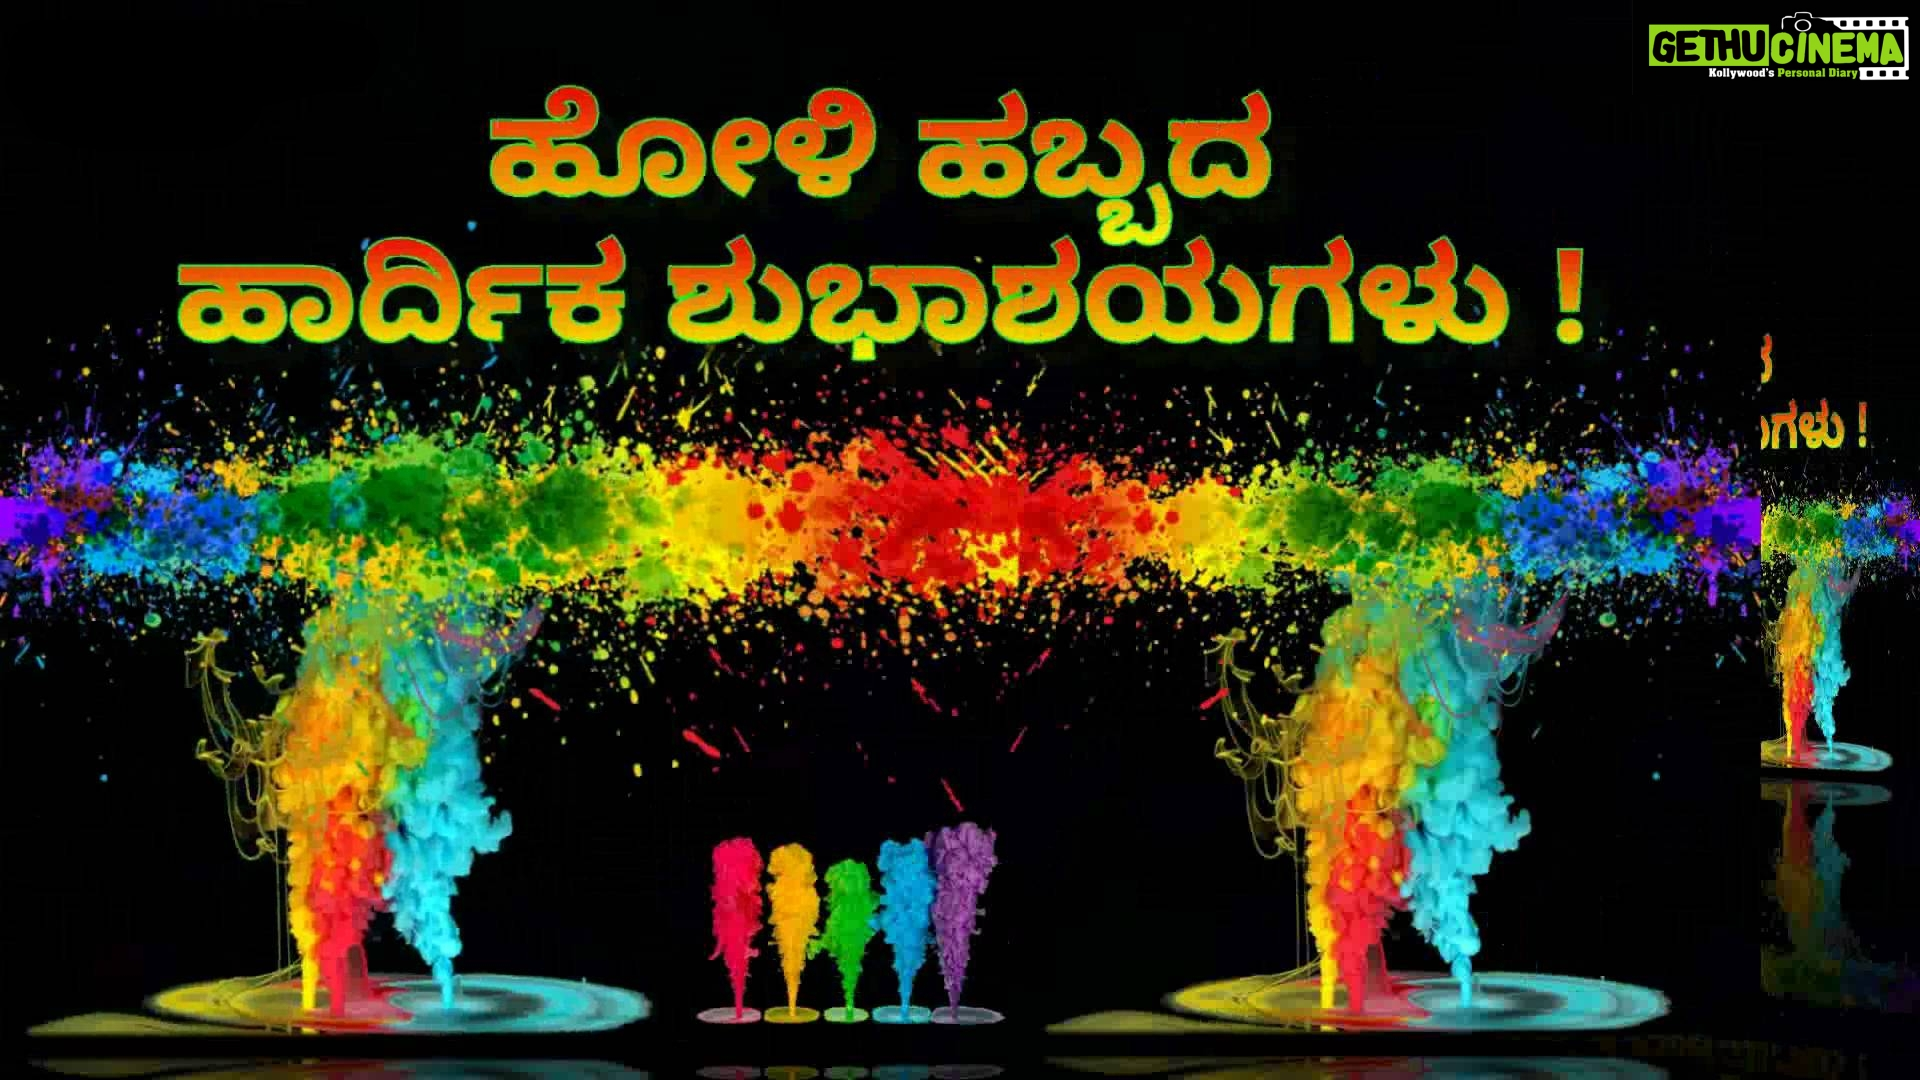 2018 Diwali Wishes, Kannada, Colourful, Exclusive - Happy Holi In Tamil Wishes , HD Wallpaper & Backgrounds